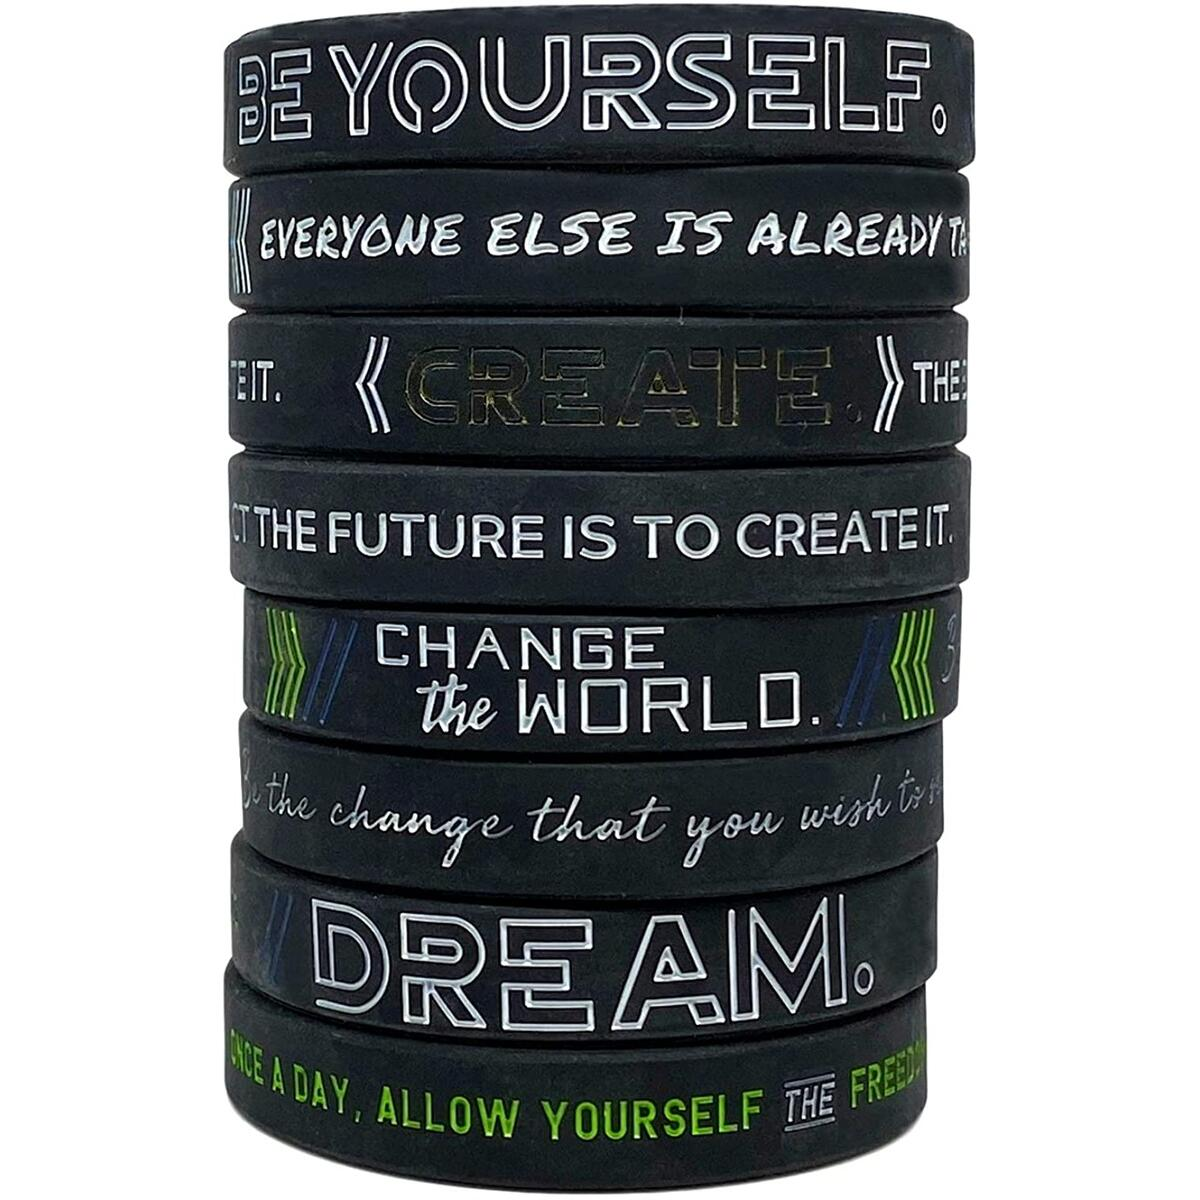 (12 Pack) - Motivational Silicone Wristbands - Be Yourself, Change The World, Create, Dream - Wholesale, Bulk Inspirational Bracelets - Unisex Gifts for Men Women Adults Teens